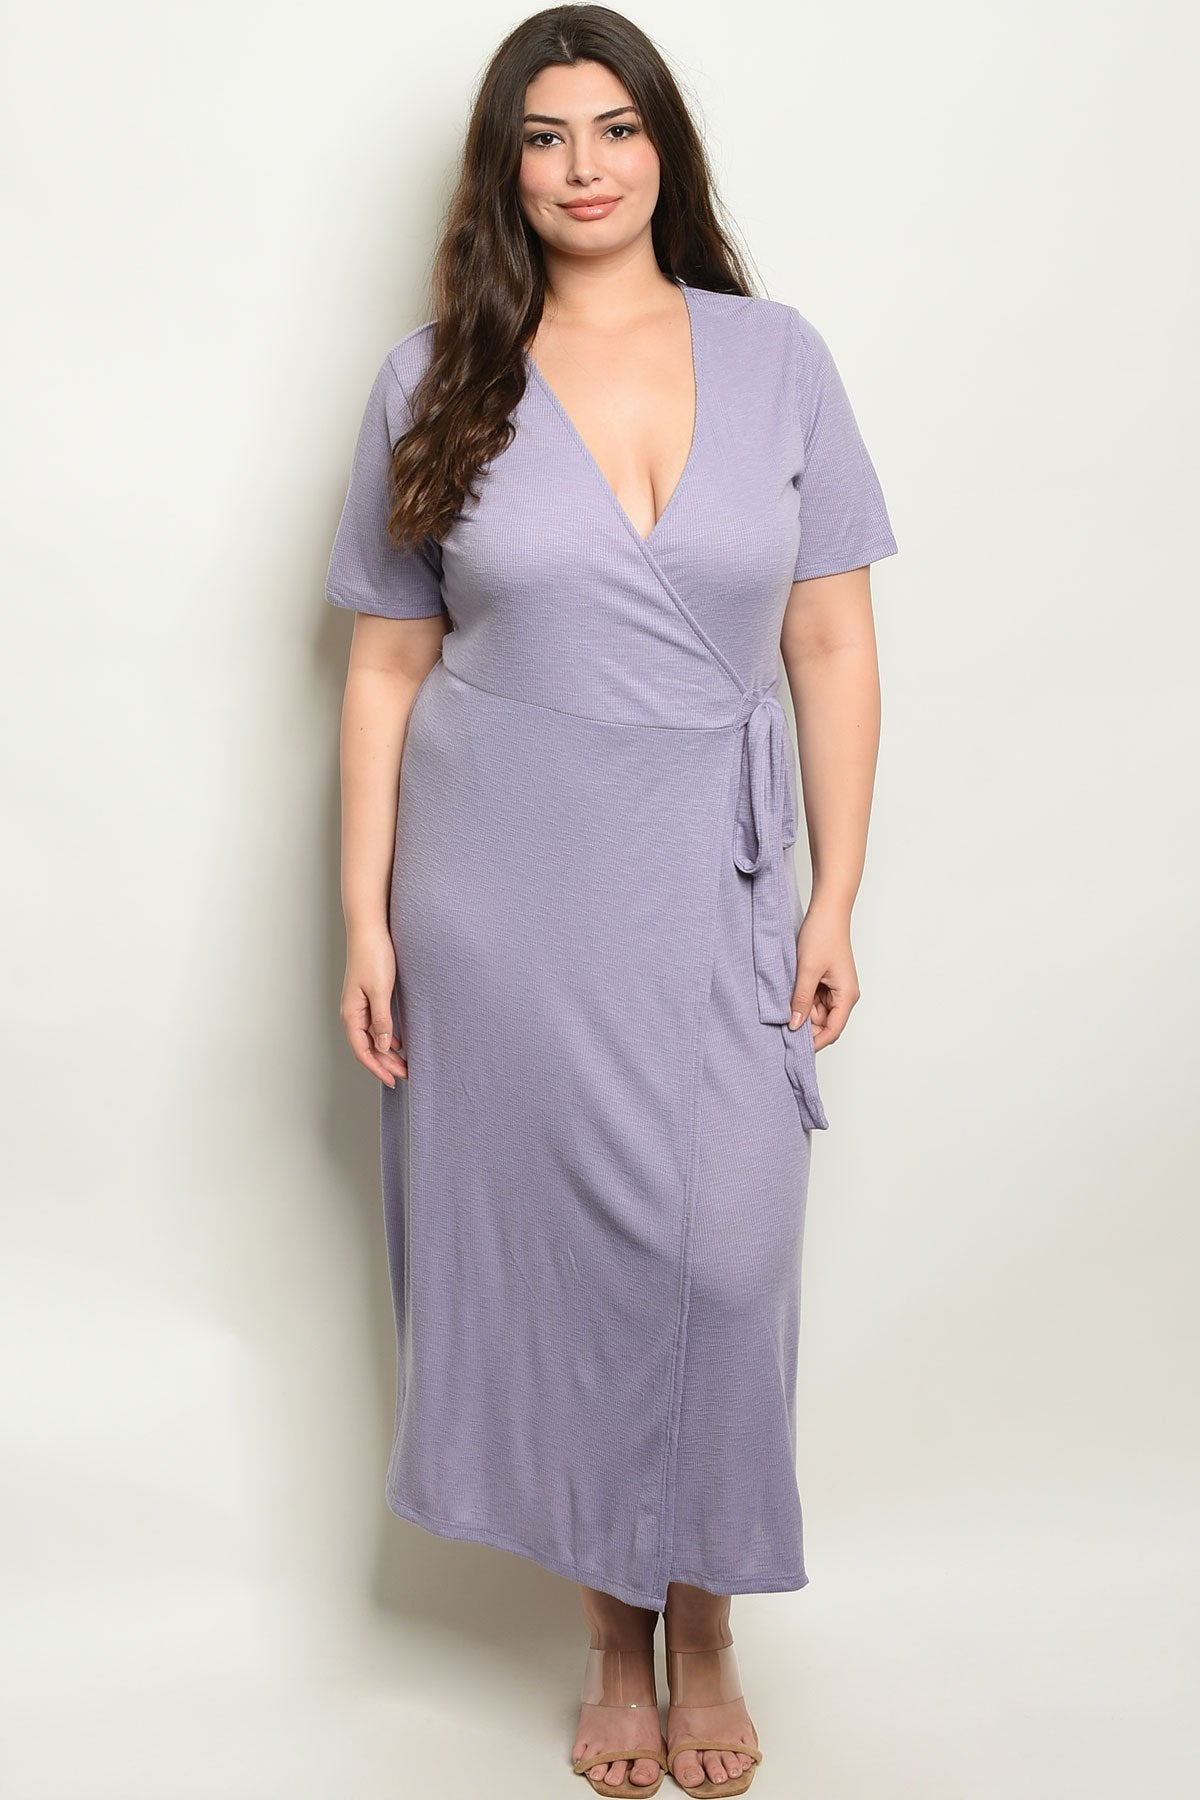 Womens Plus Size Dress - Manifest Best Boutique